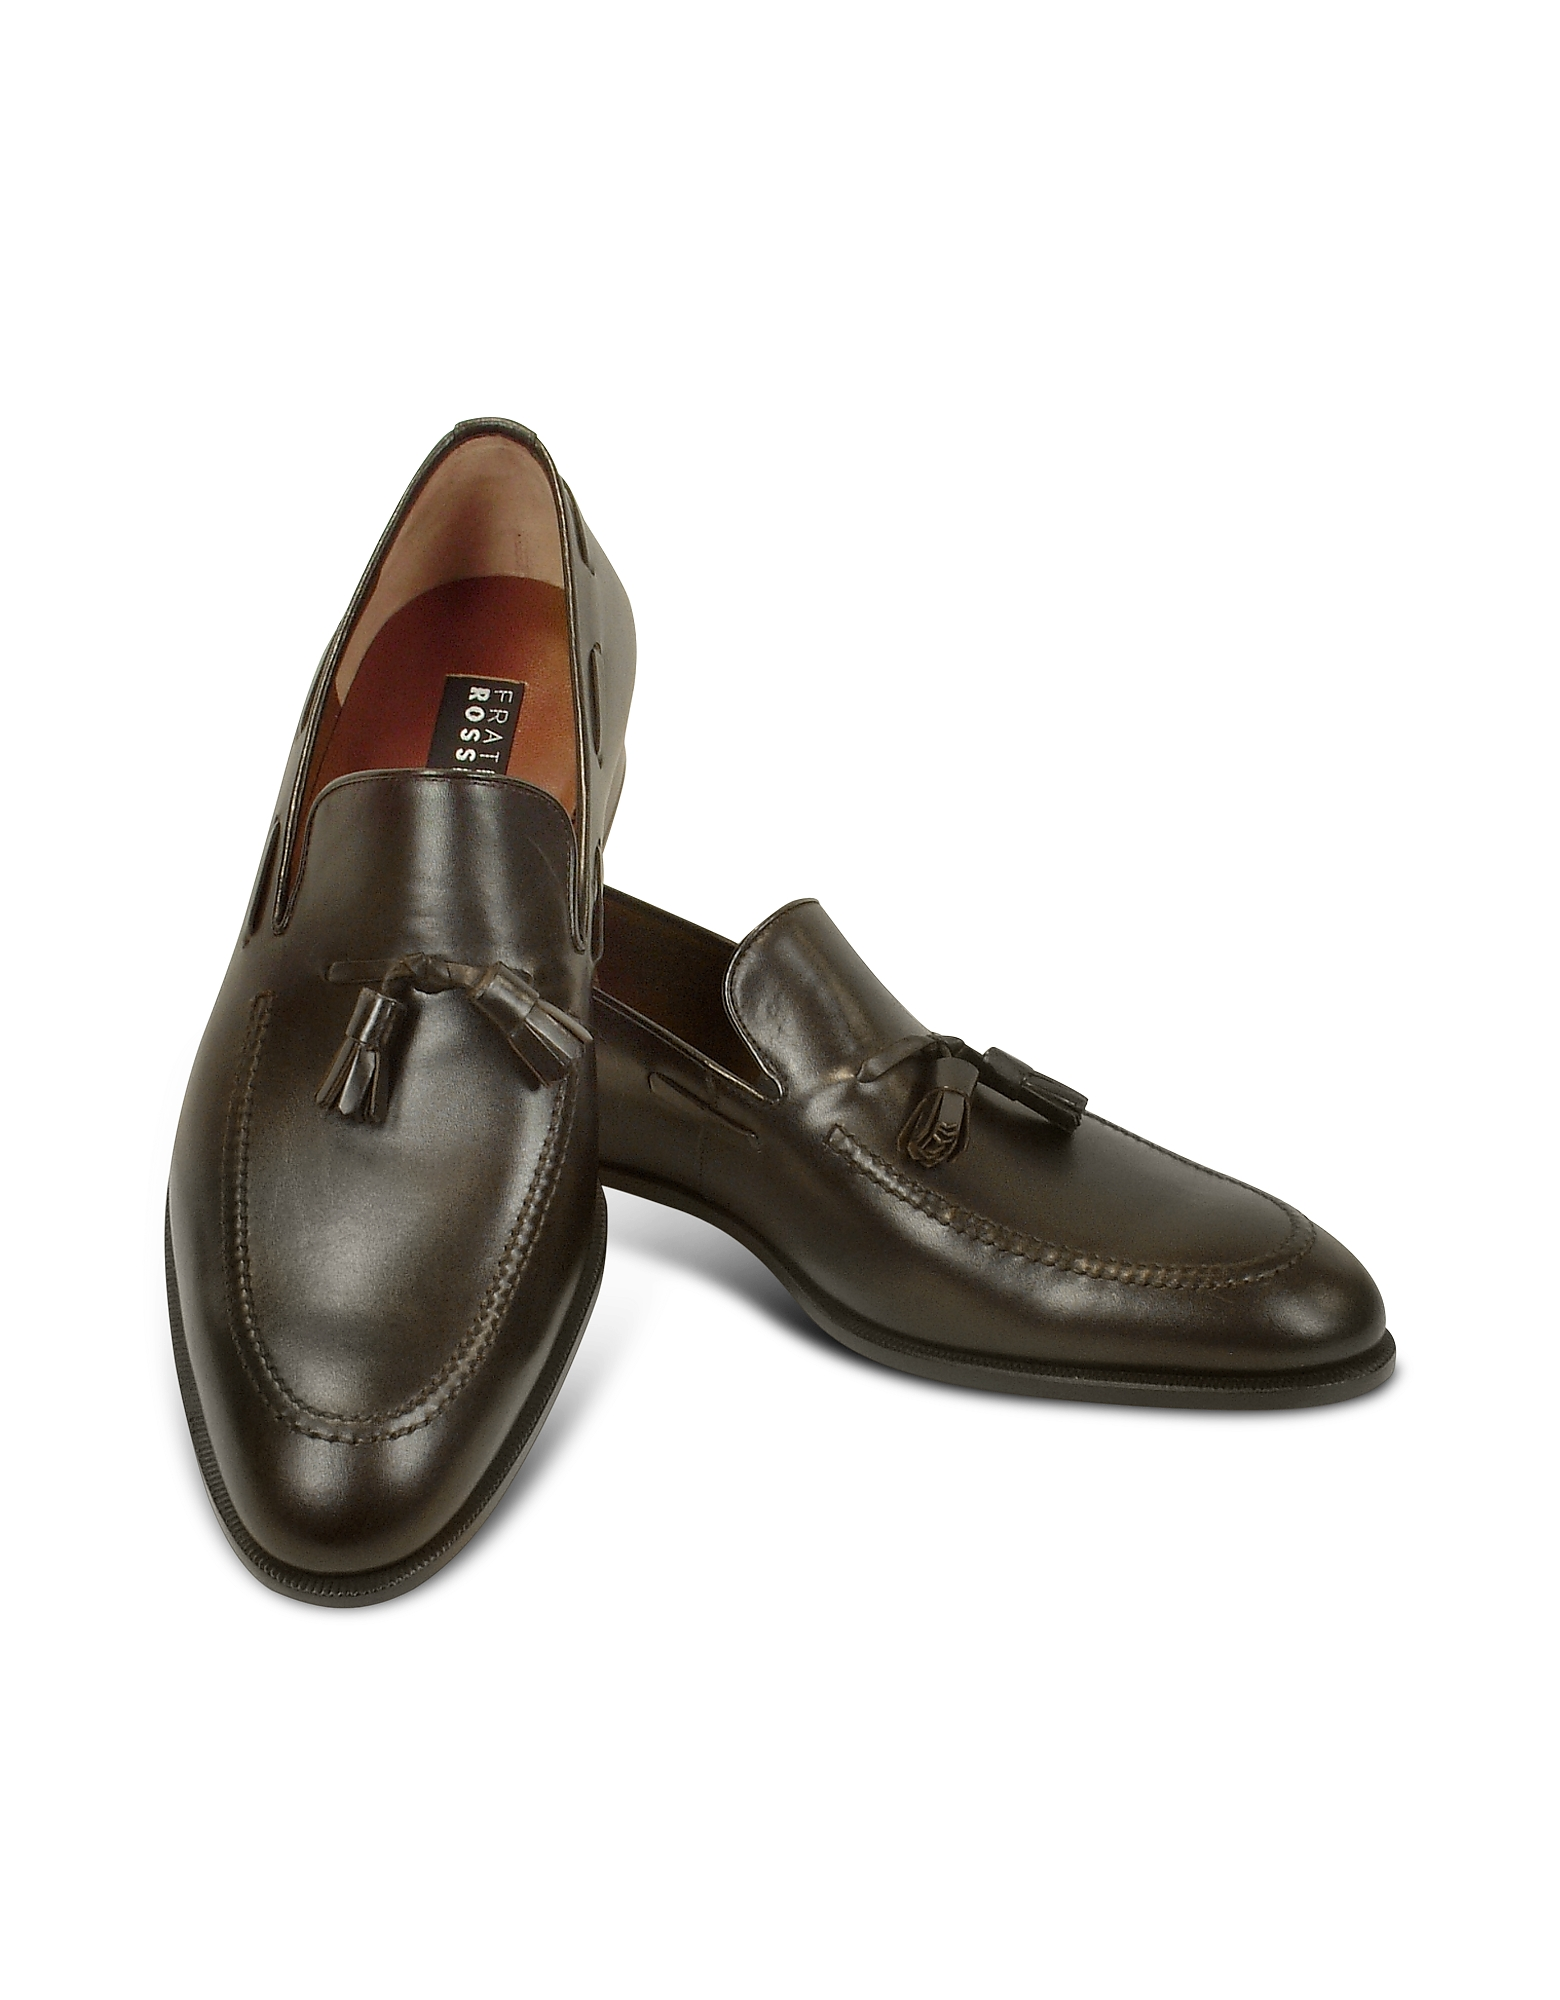 Image of Fratelli Rossetti Designer Shoes, Dark Brown Calf Leather Tassel Loafer Shoes